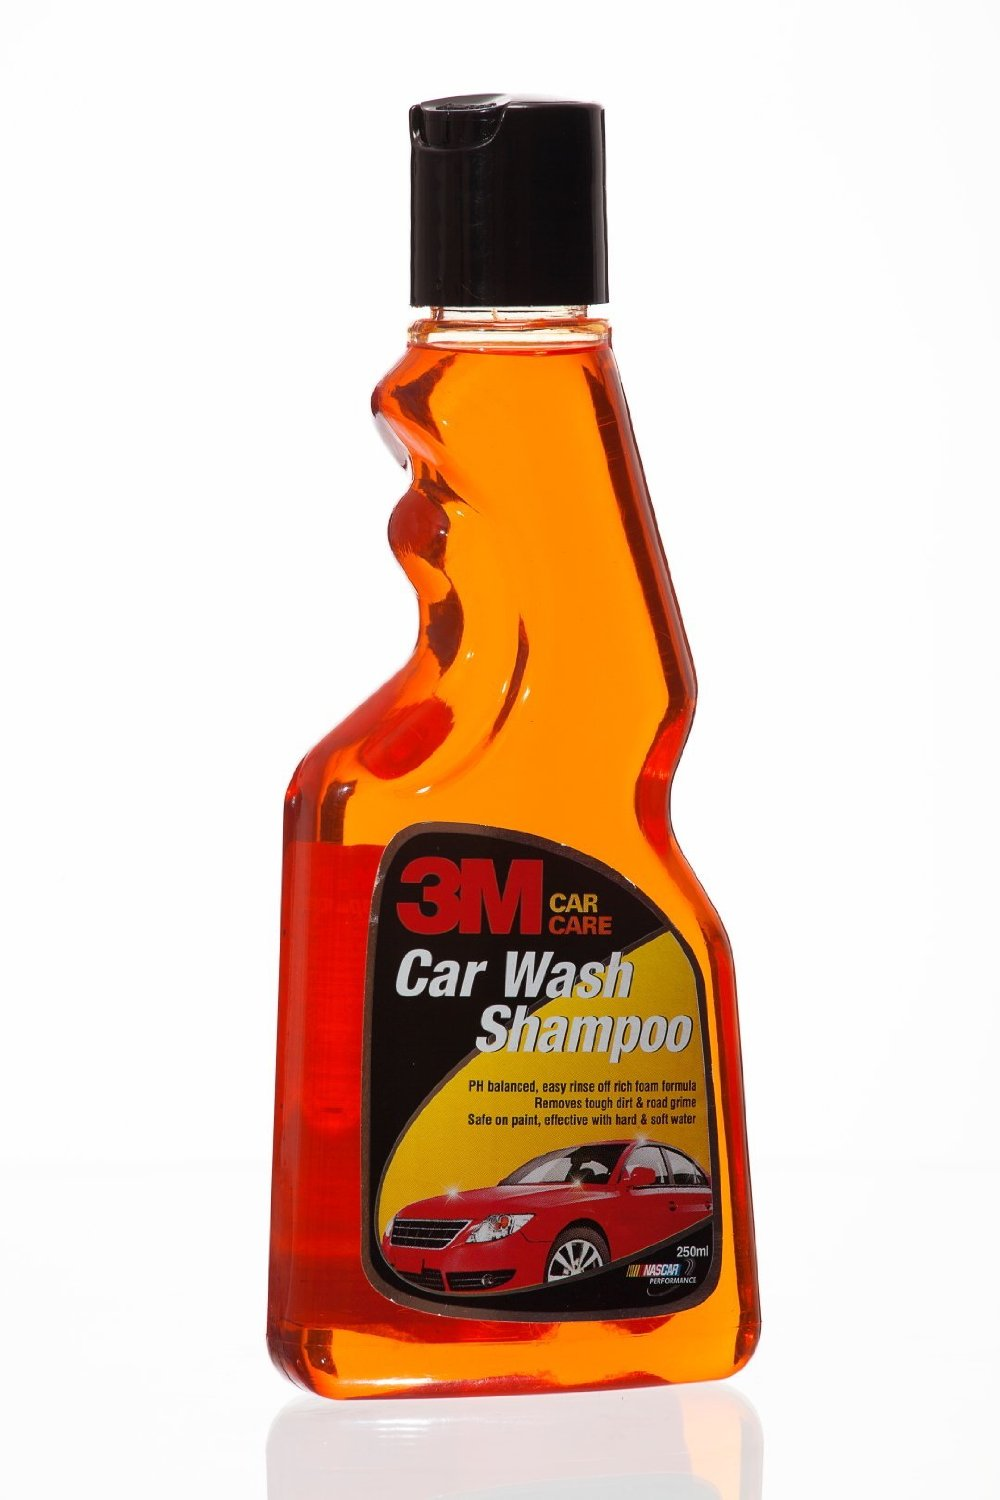 New 3M Car Care Shampoo Introduced - Maintains Gloss and Shine And Prevents Damage